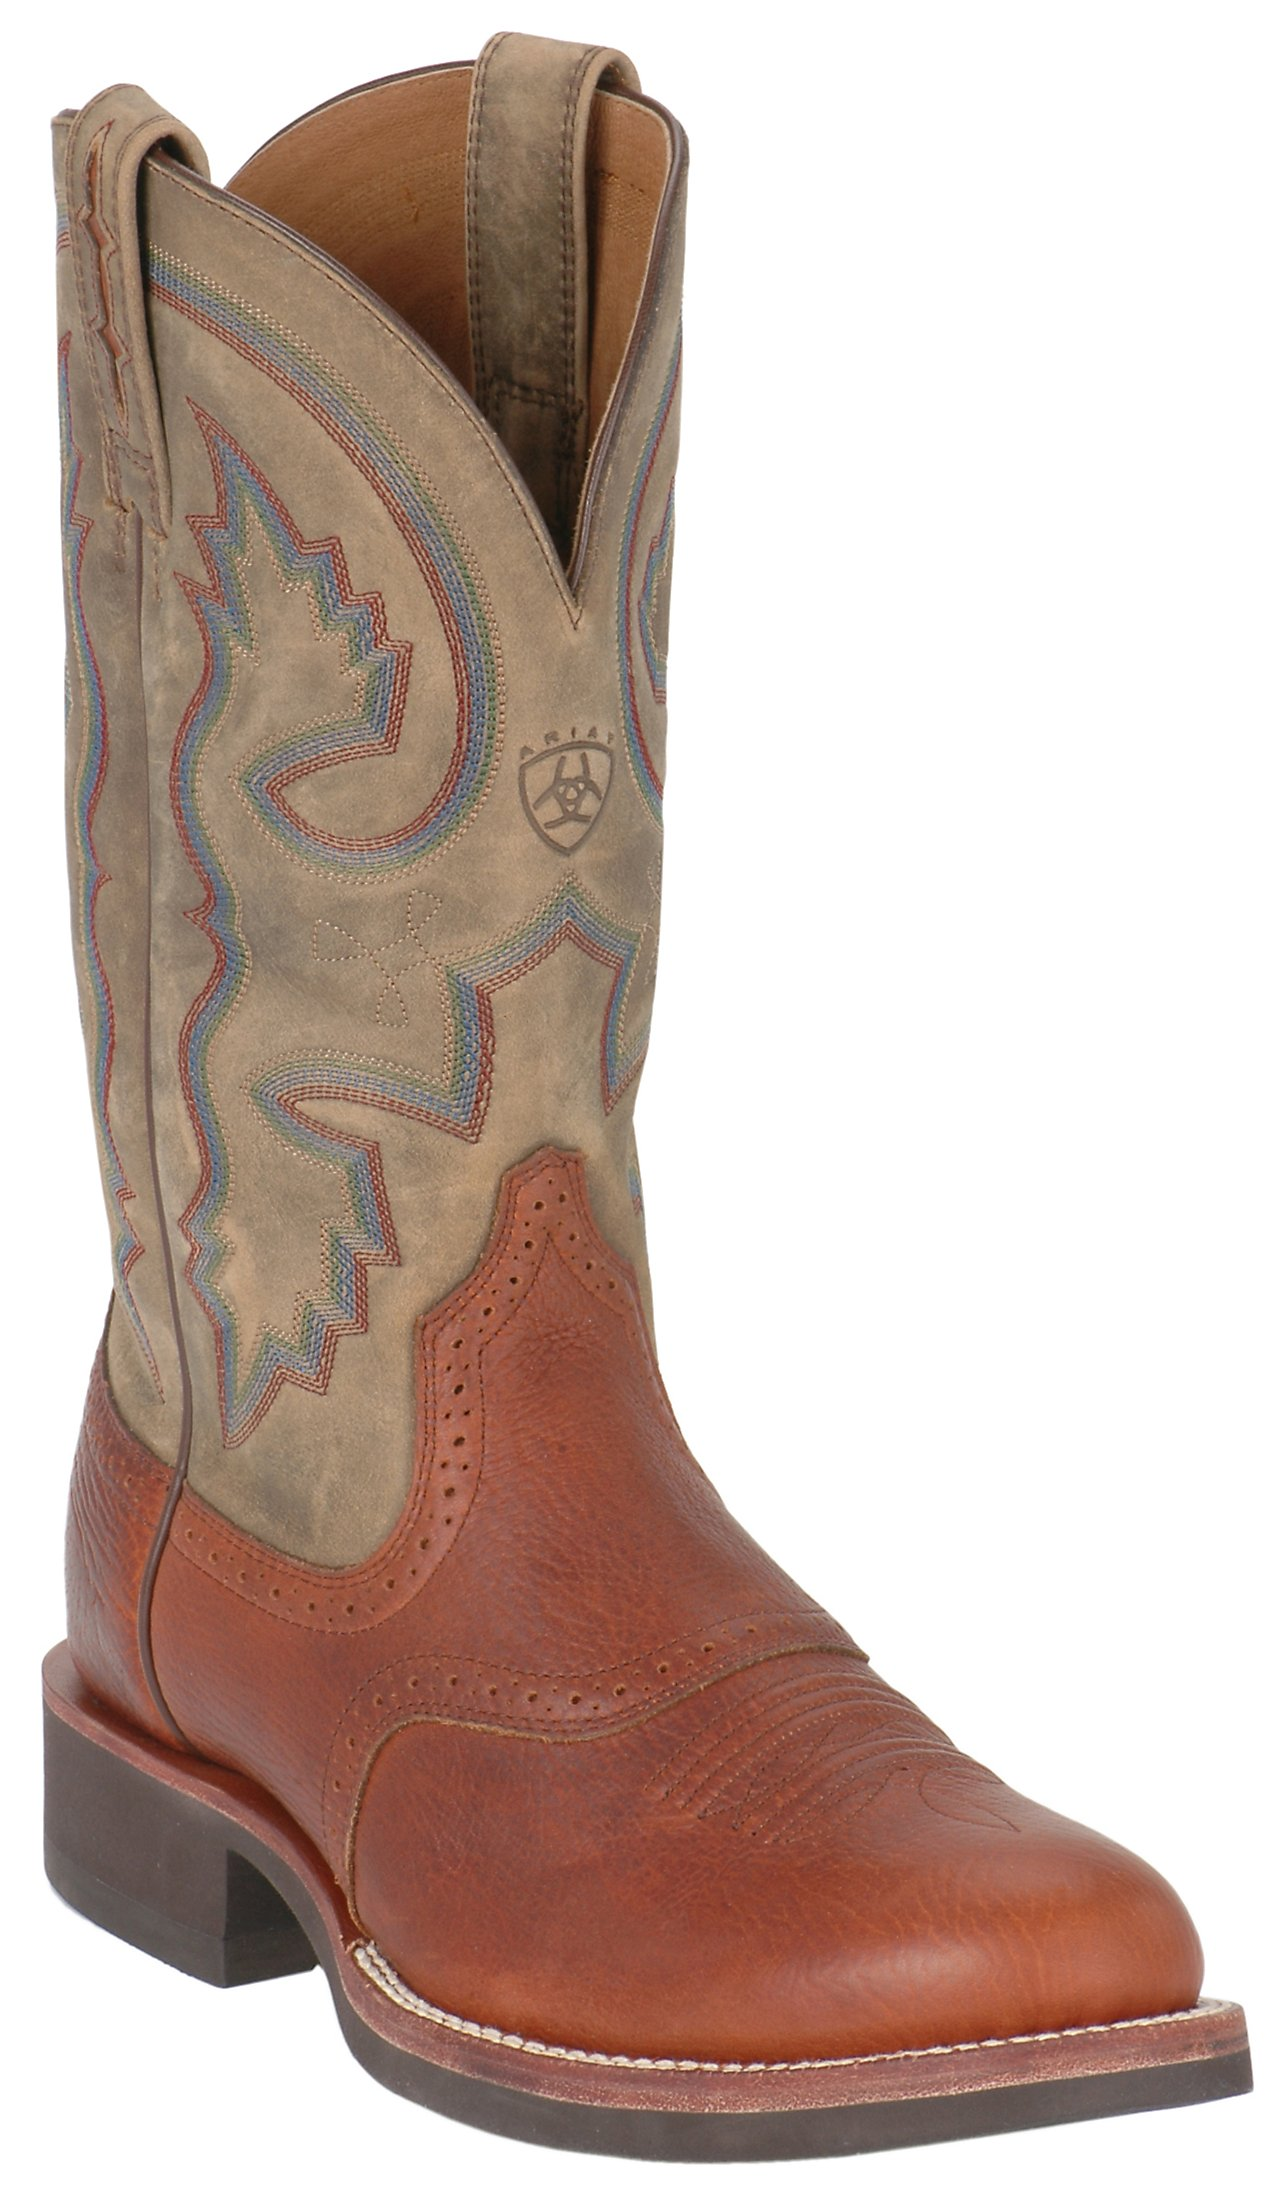 Ariat Cobalt Quantum Men's Red Oak & Brown Bomber Crepe Sole Boots ...